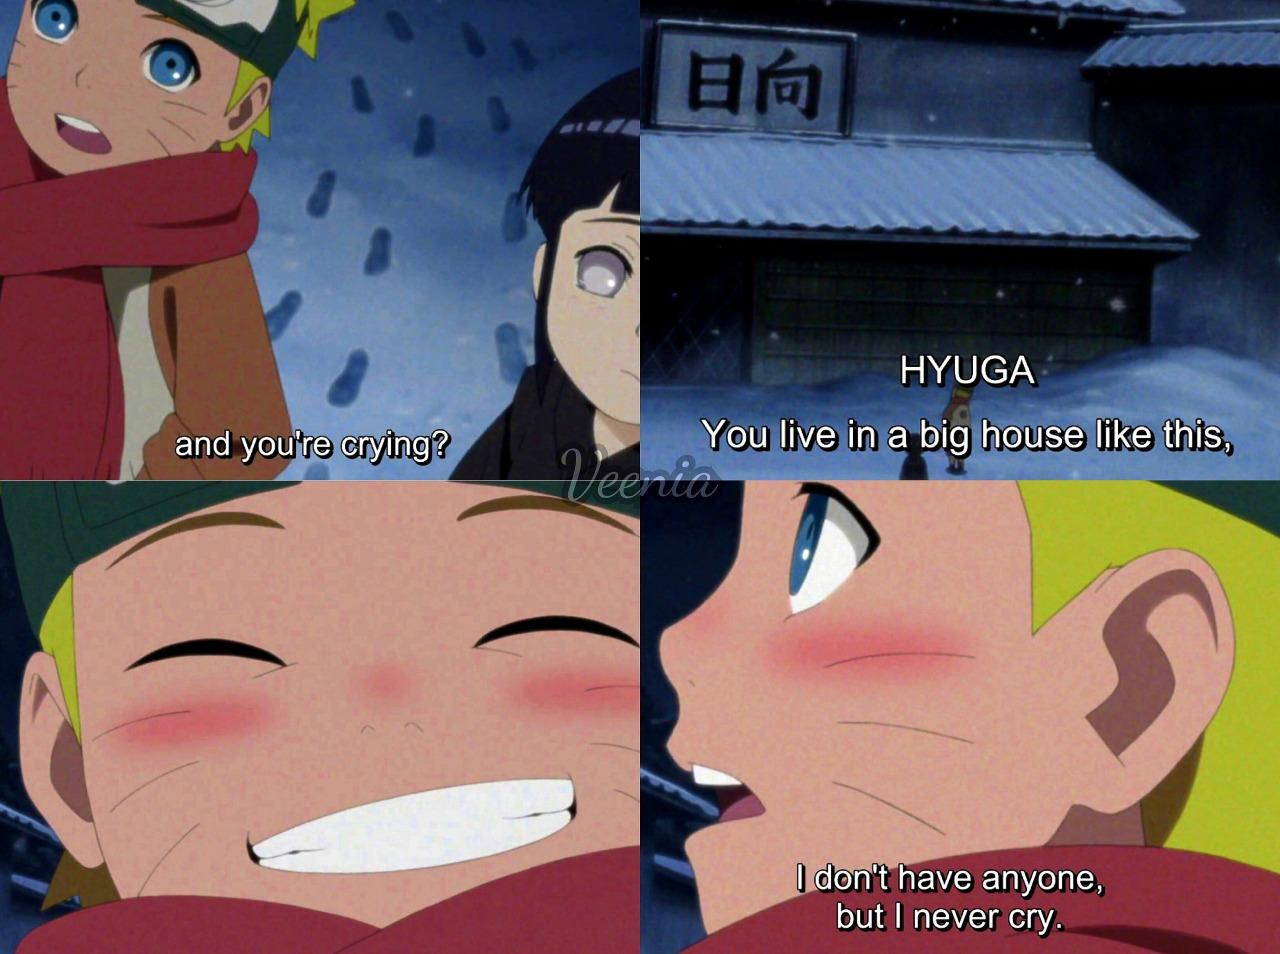 [Image] This scene from Naruto always gets me. It teaches an important lesson on how we are fortunate enough and no matter the difficulties we should always keep smiling and moving forward.